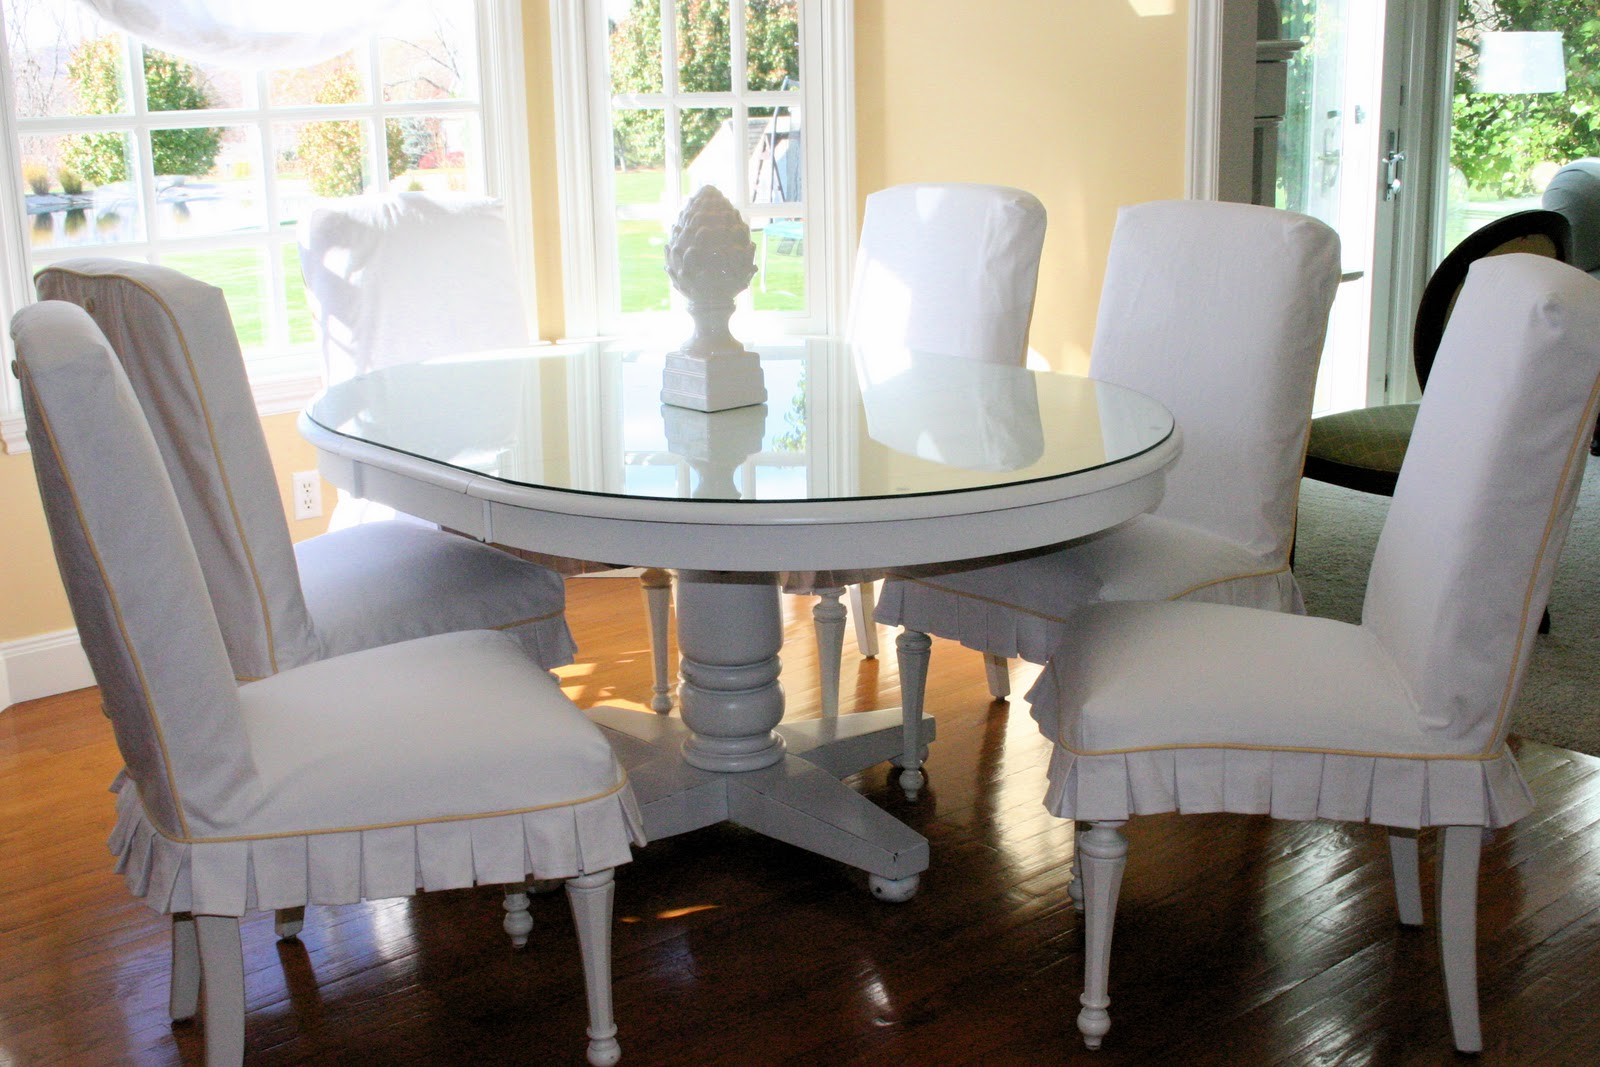 slipcovers painted white kitchen table white distressed kitchen table Slipcovers a Painted White Kitchen Table